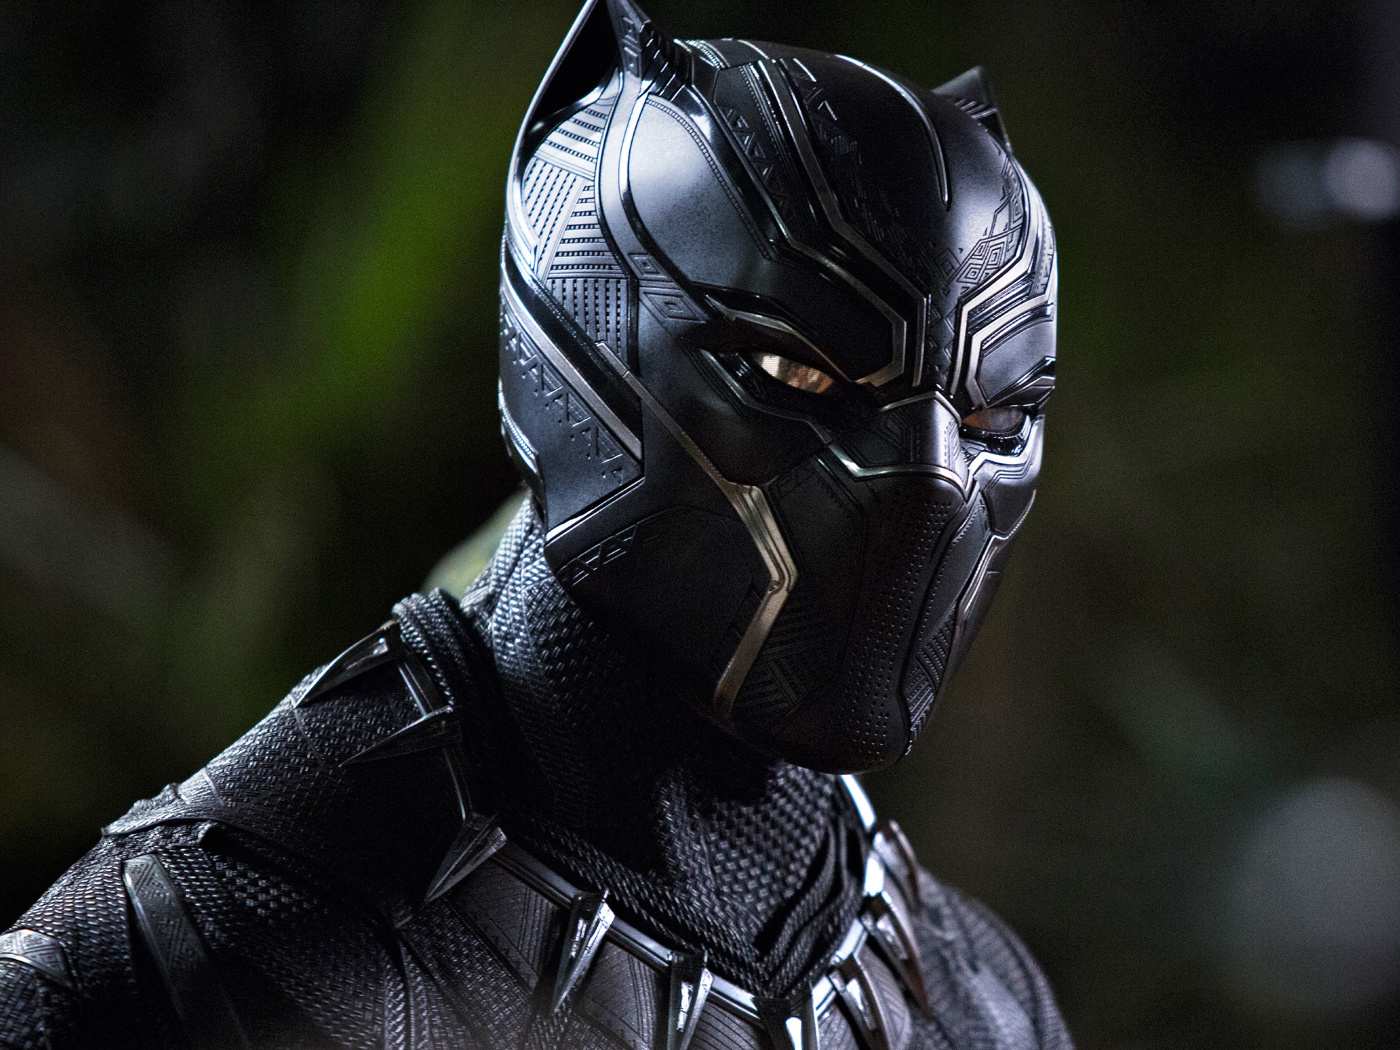 Black Panther Movie, Full HD 2K Wallpaper